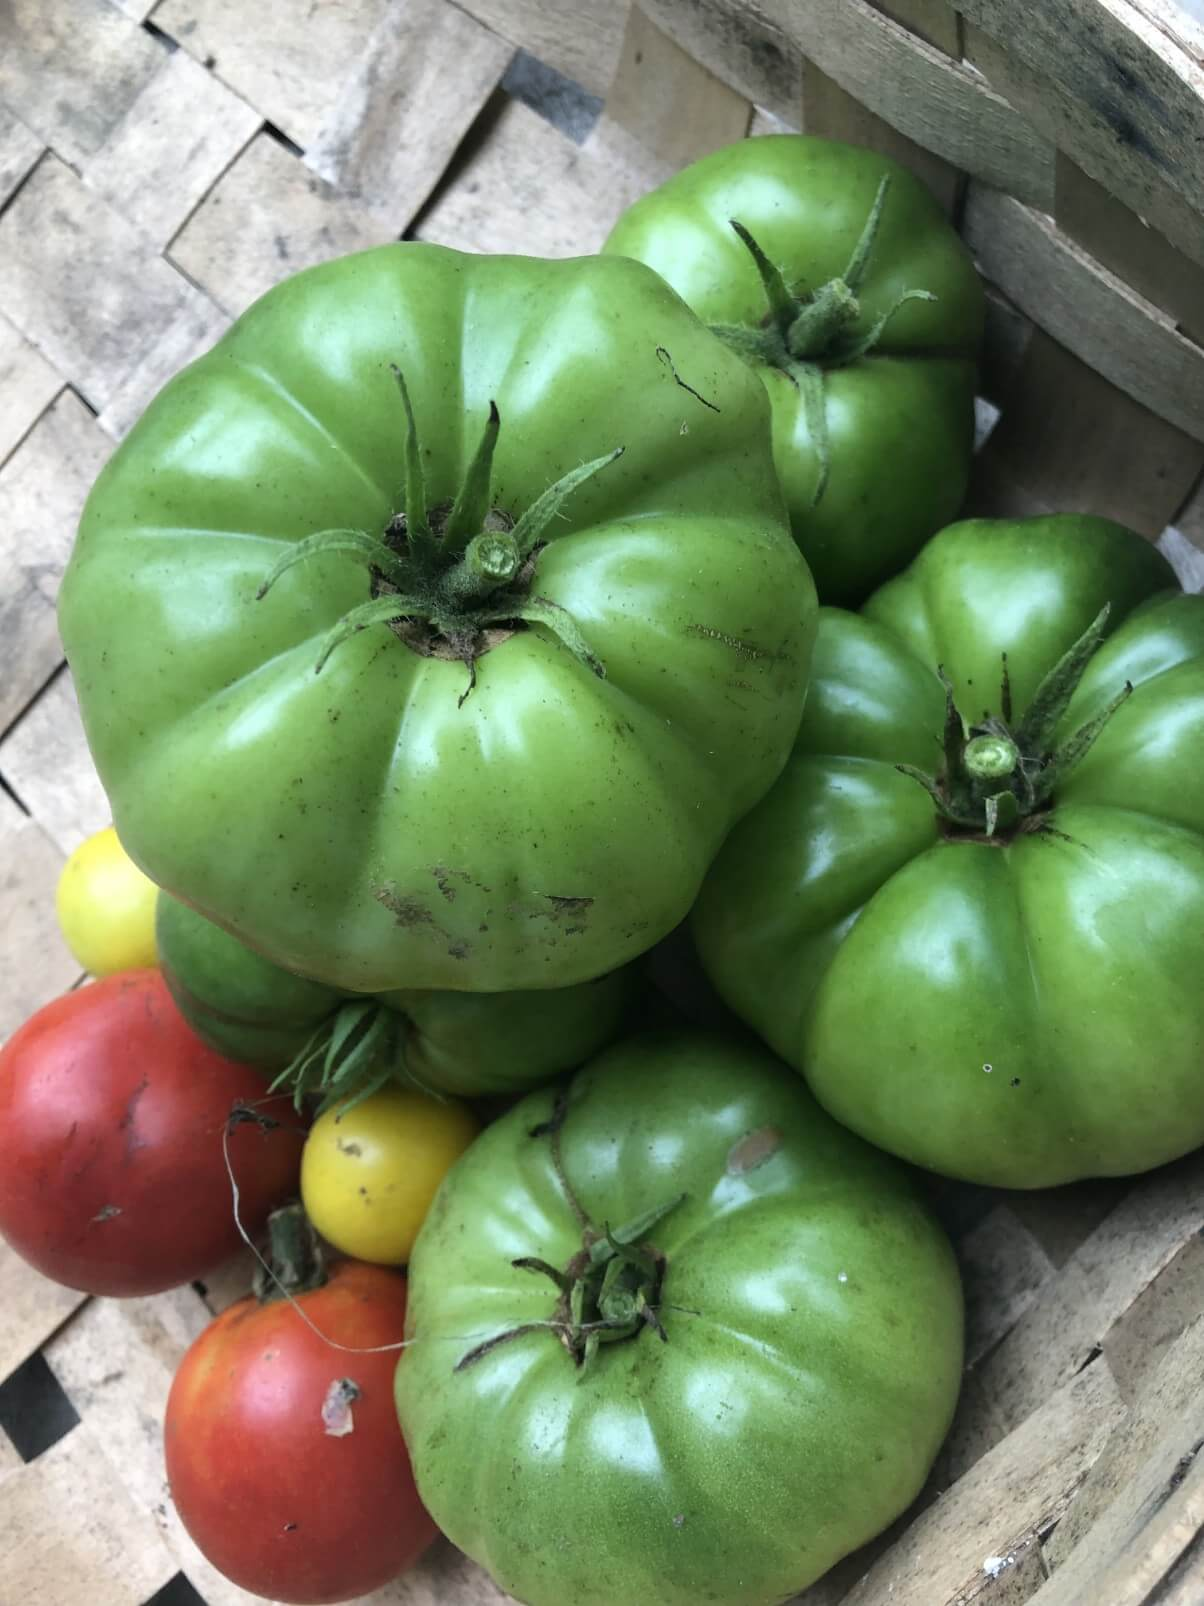 harvest of green tomatoes with small red and yellow tomatoes